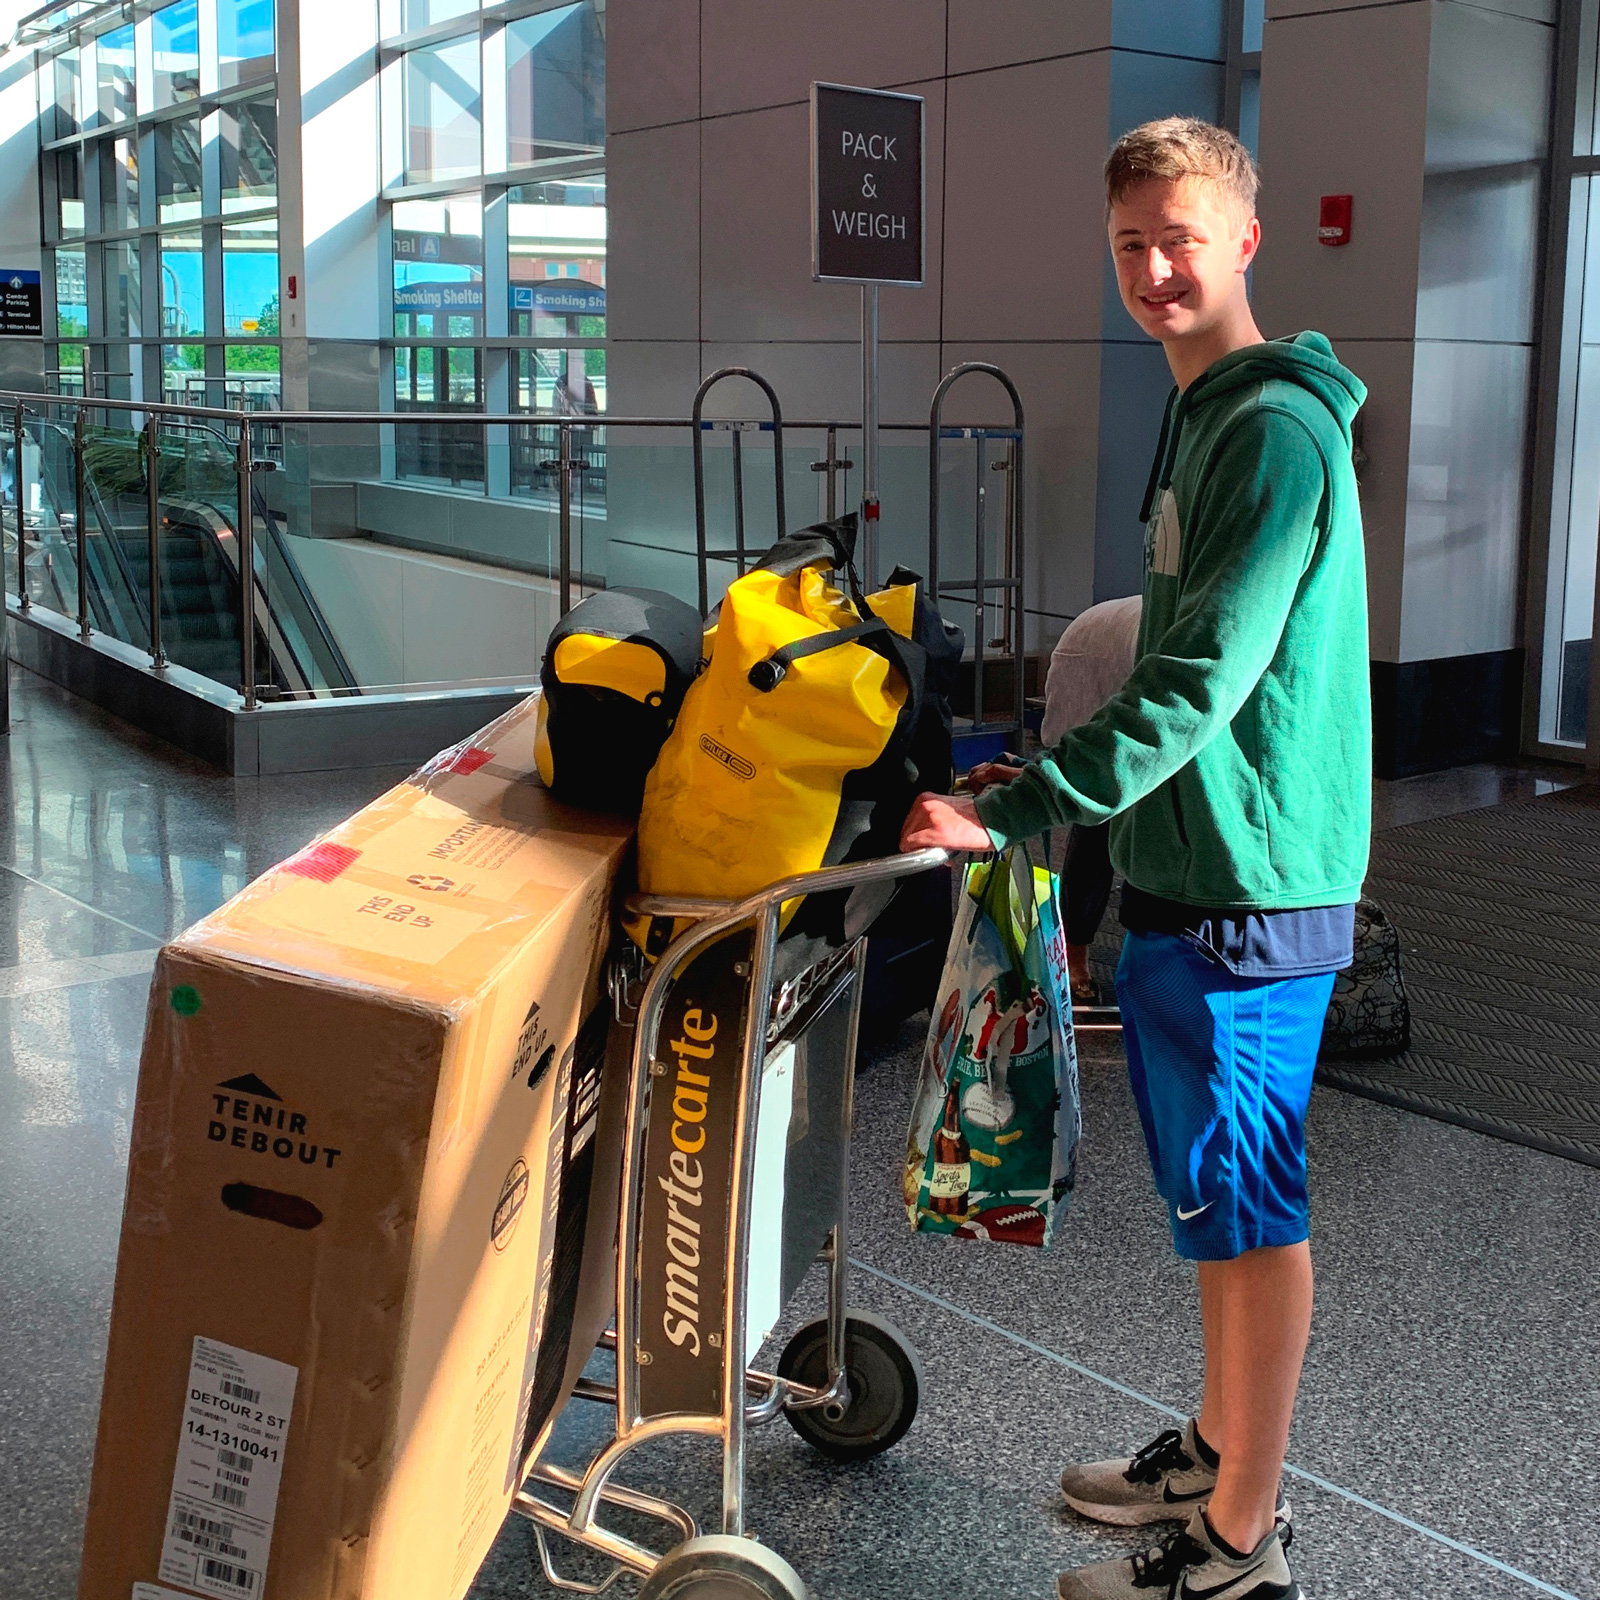 A photo of a teenager at the airport with luggage.